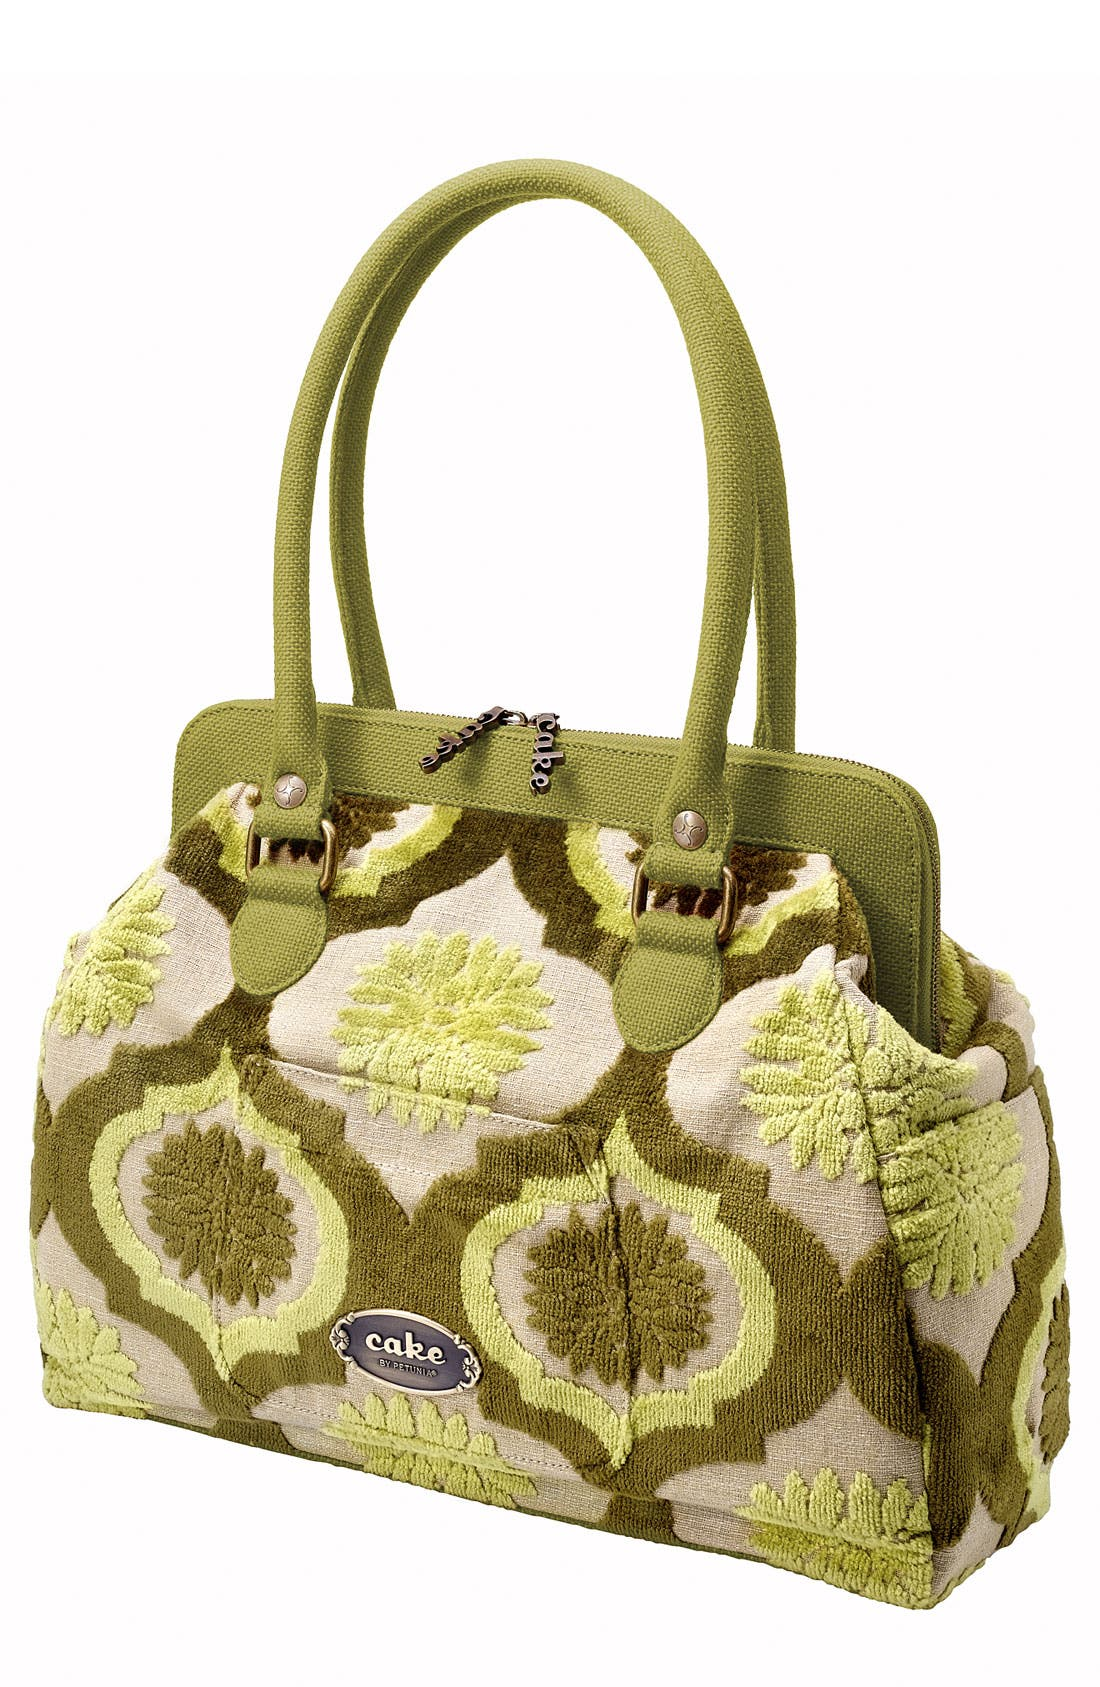 Main Image - Petunia Pickle Bottom 'Cosmopolitan Carryall - Cake' Diaper Bag